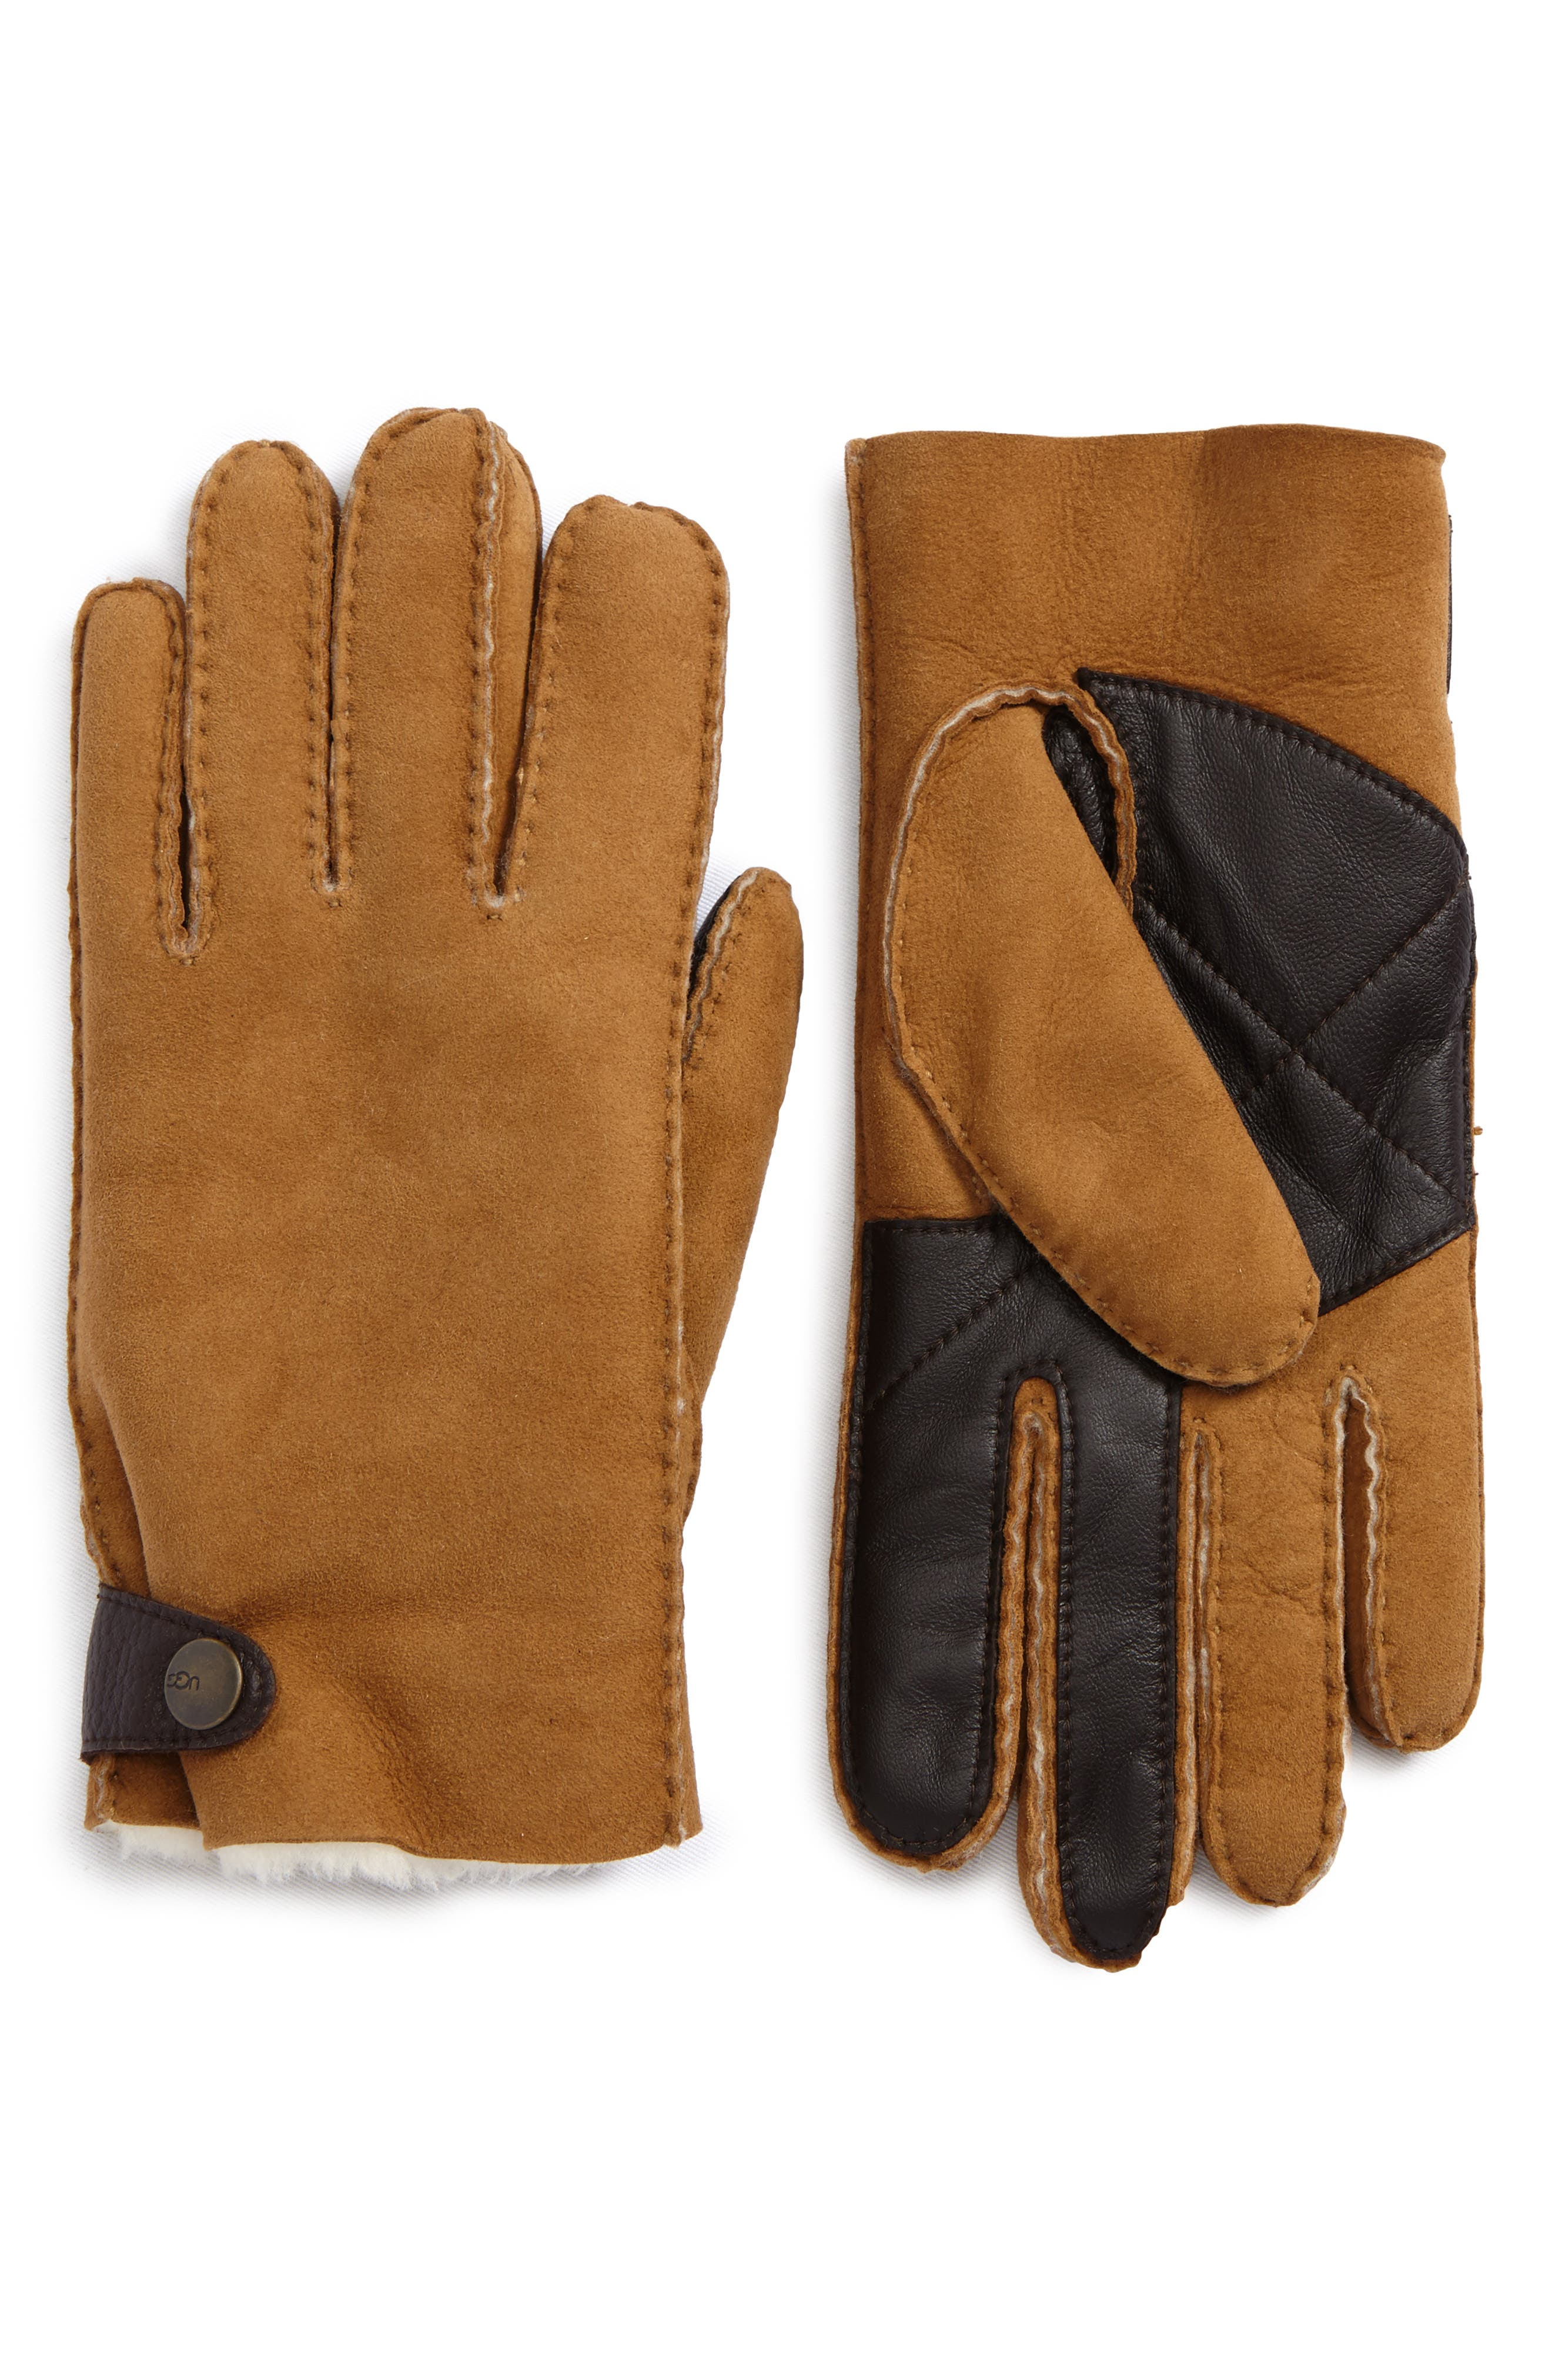 Shearling Tech Gloves,                             Main thumbnail 1, color,                             Chestnut